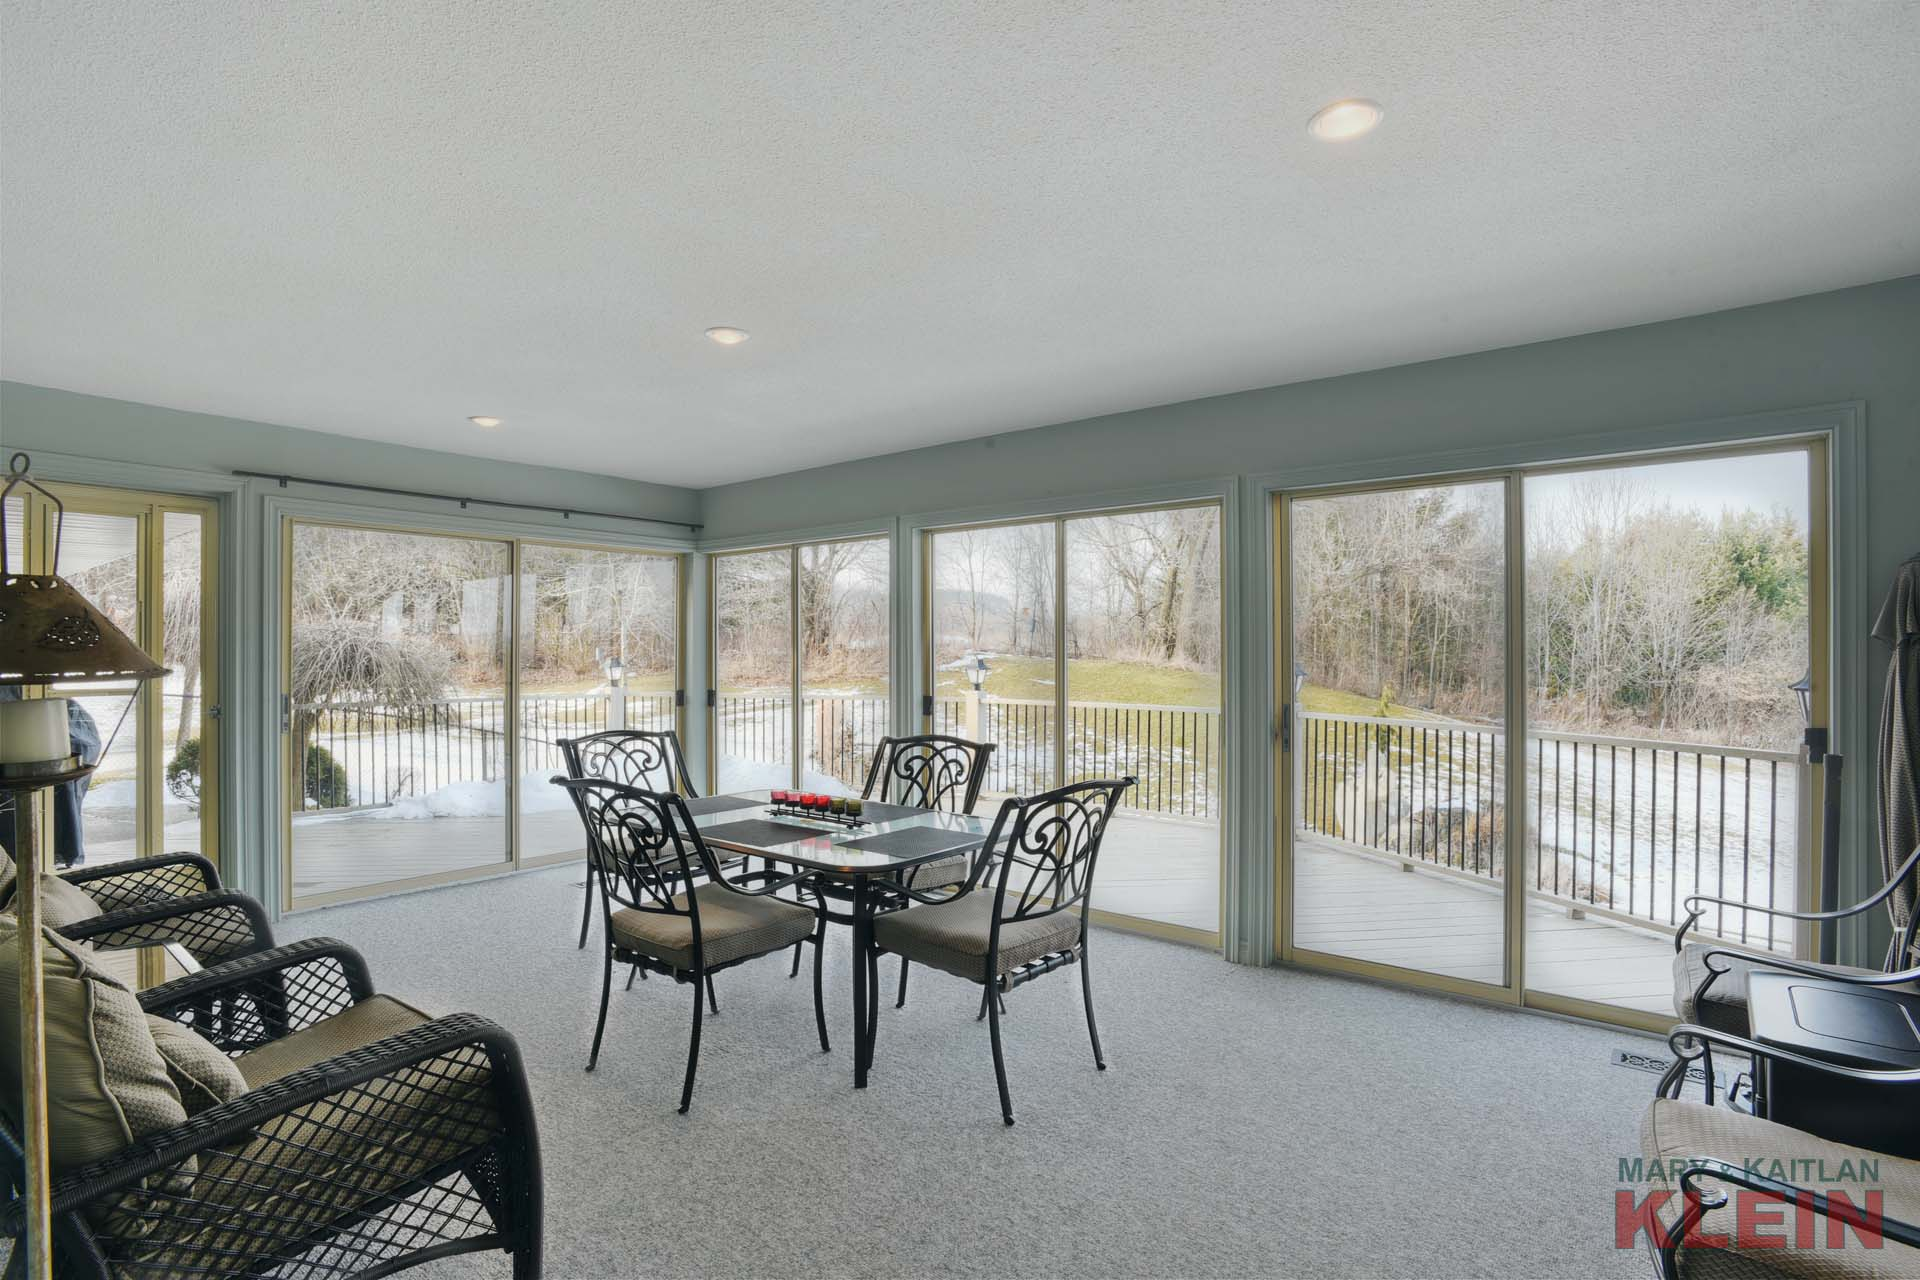 Caledon bungalow w walkout basement in law suite for sale for Walkout basement sunroom